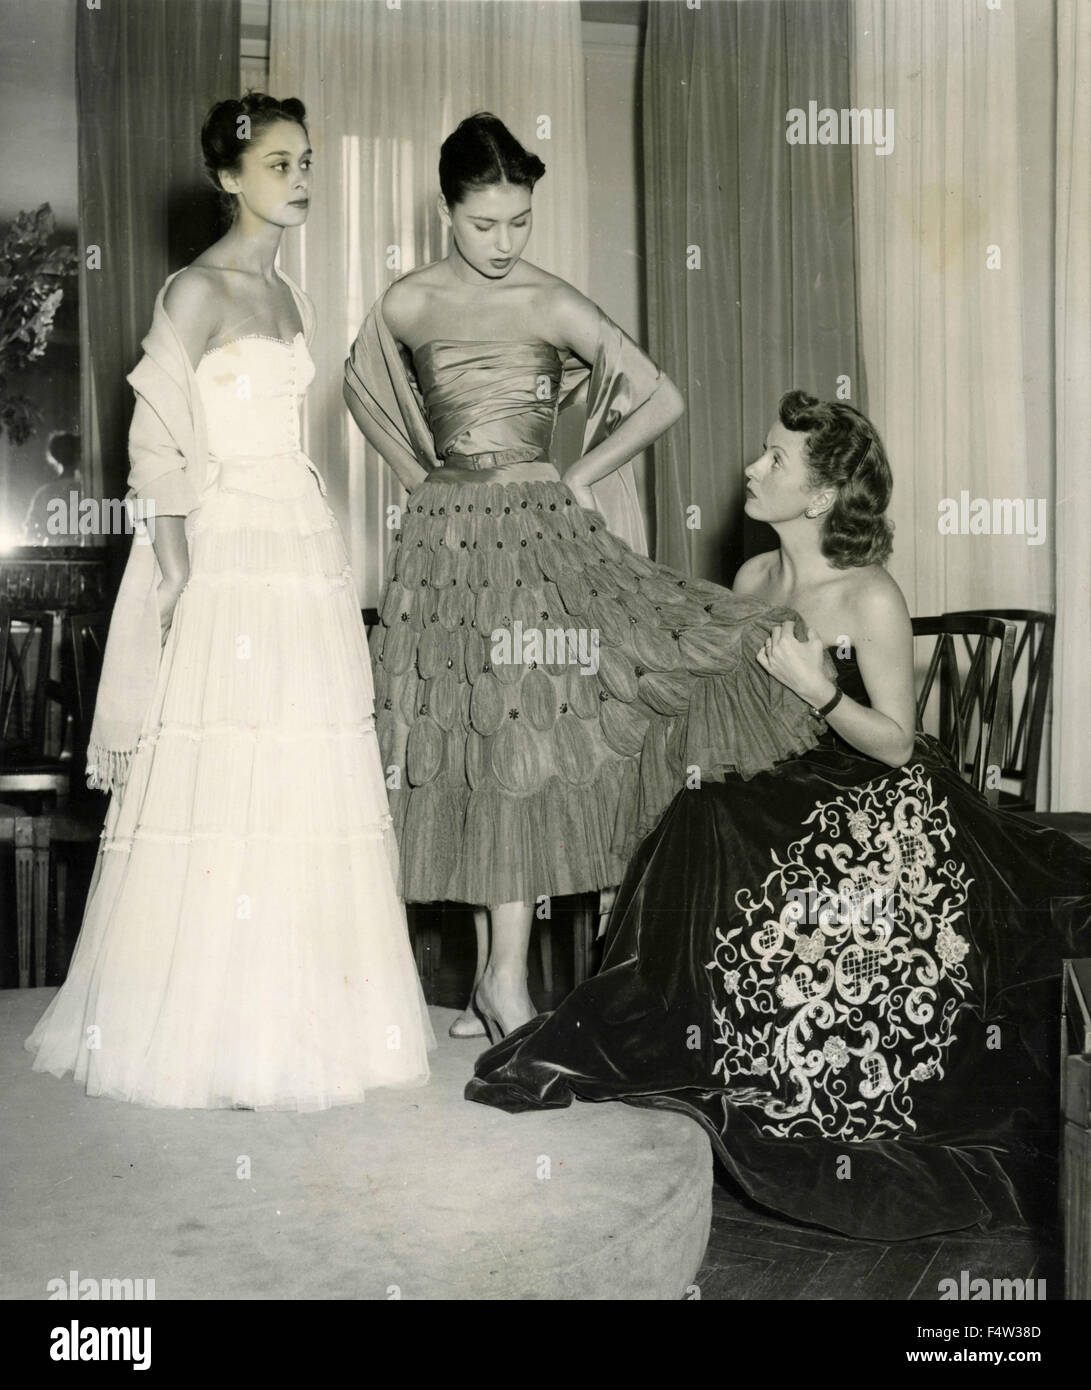 b052cf2d The French actress Danielle Darrieux observes the clothes prepared for her  by fashion designer Pierre Balmain